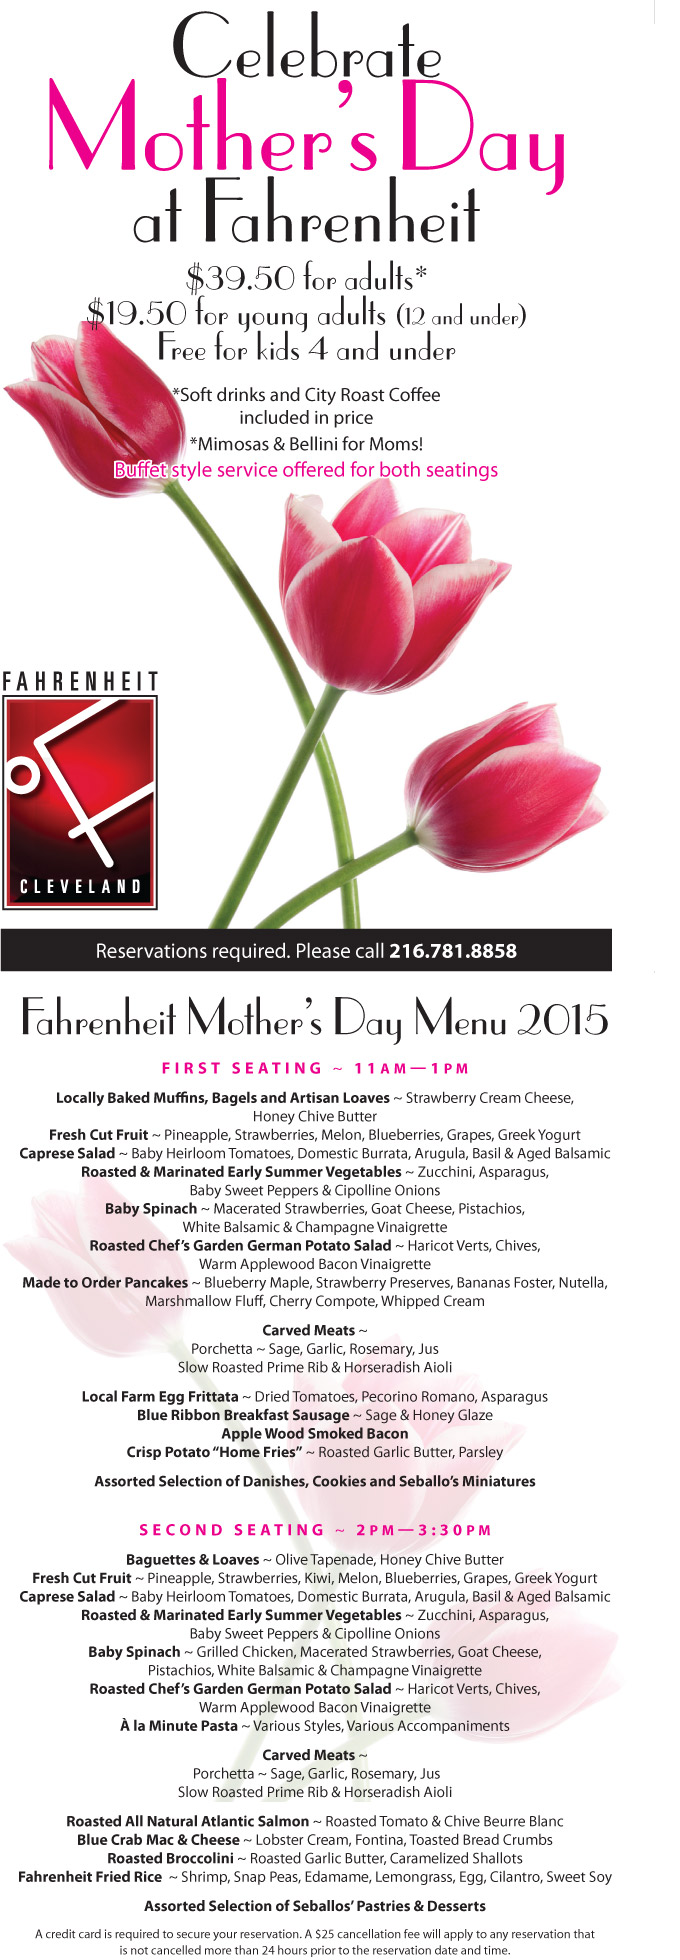 mothersdayCLE